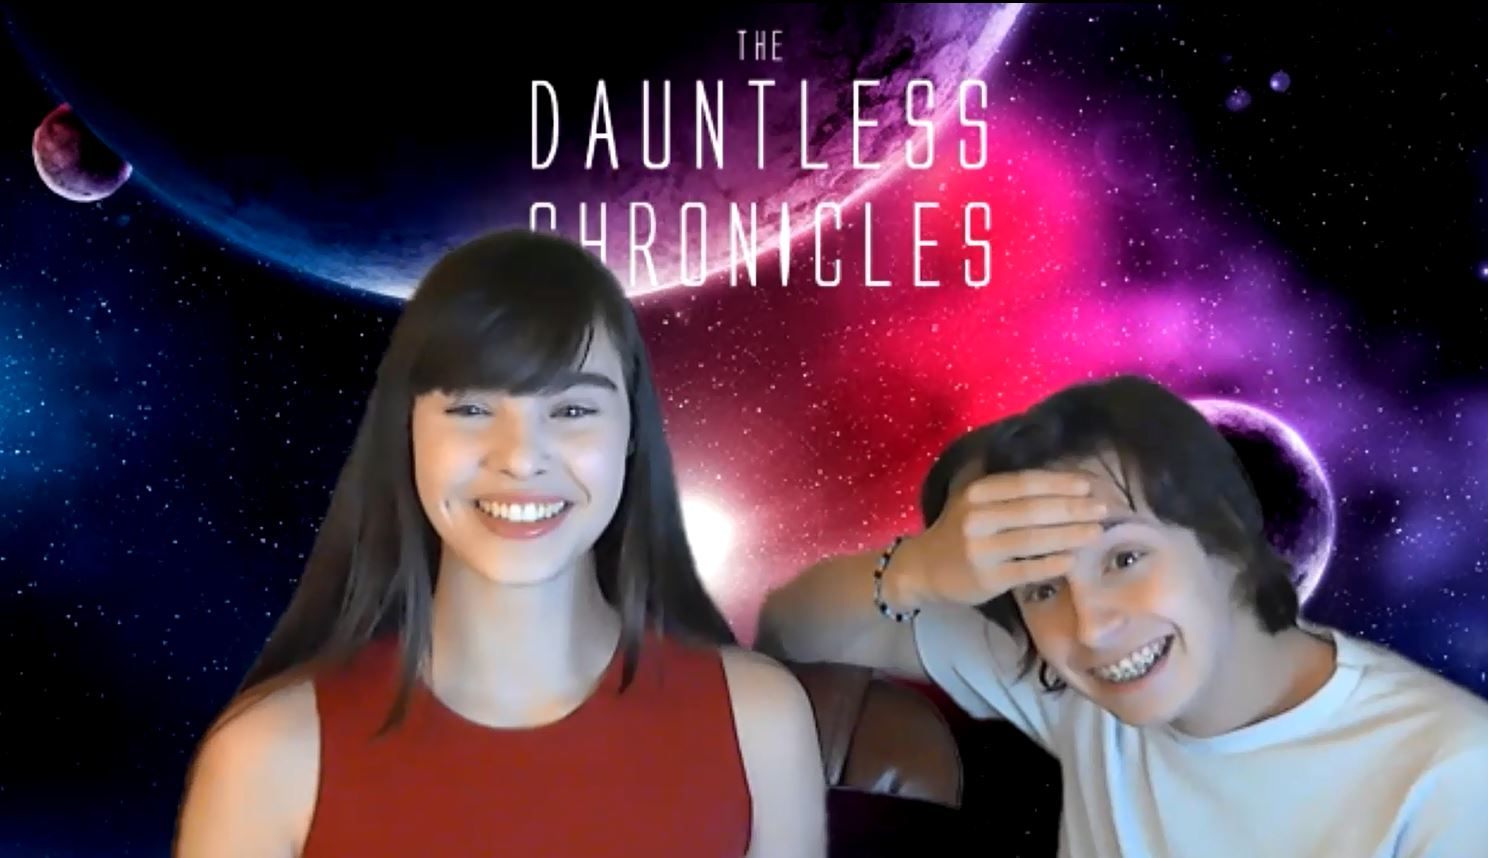 The Dauntless Chronicles